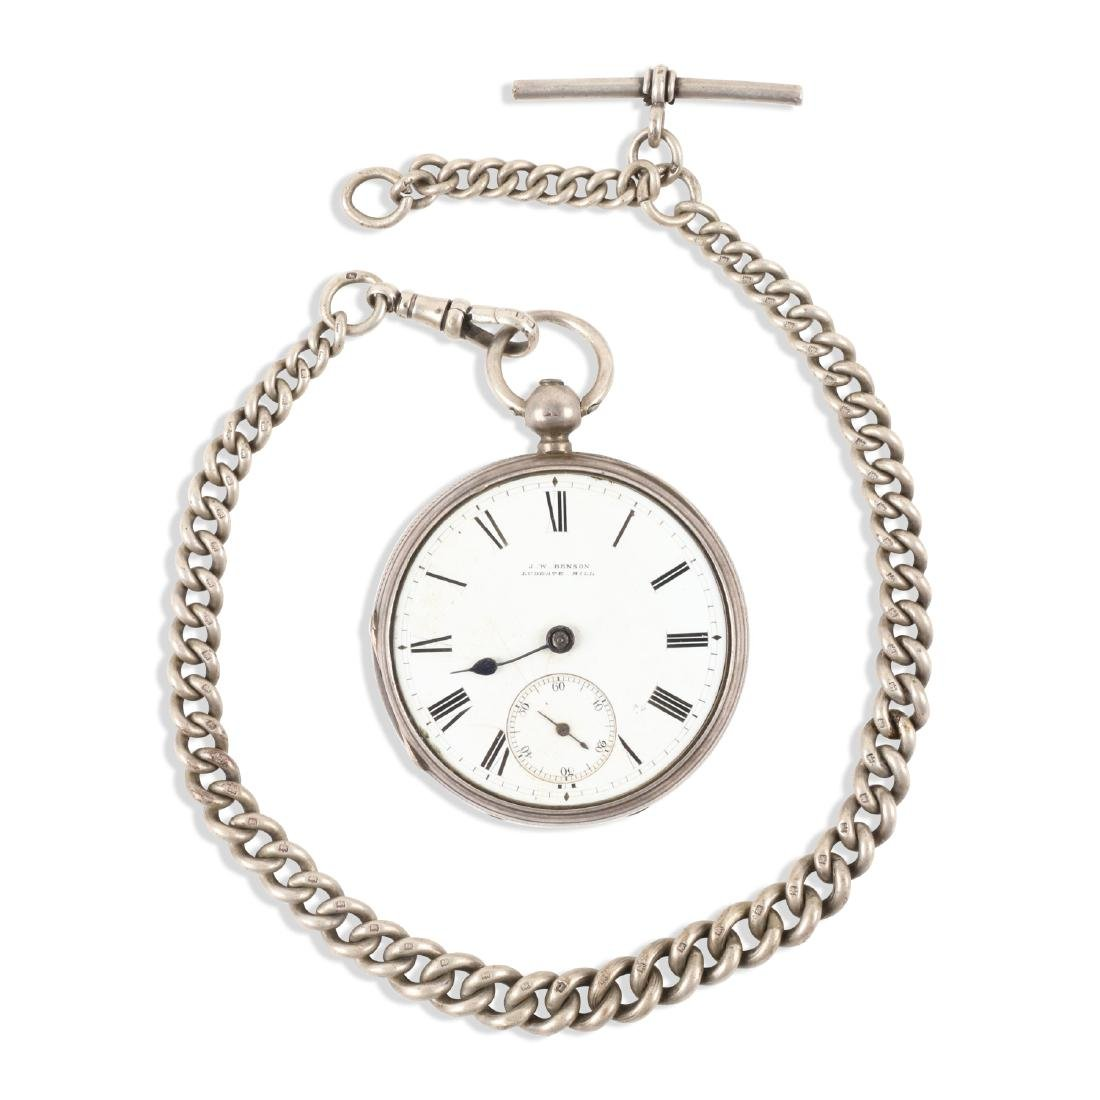 J.W Benson, English Pocket Watch & Chain